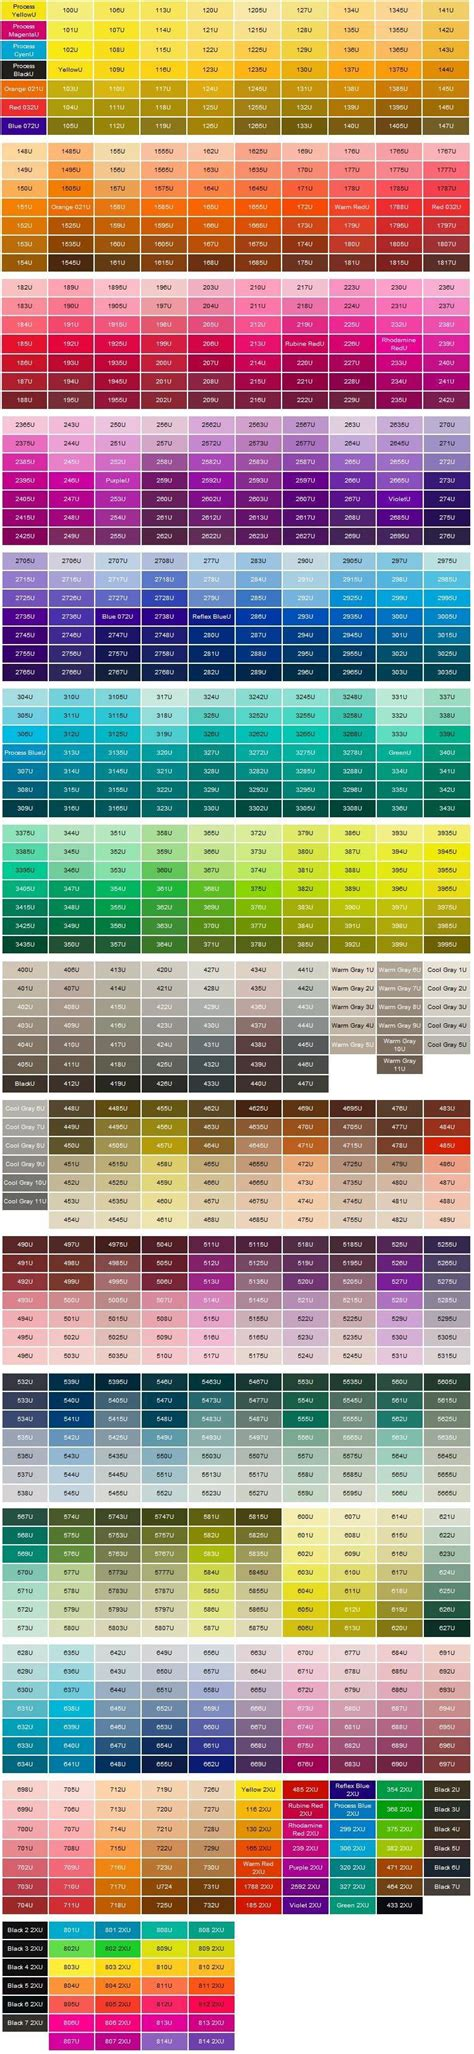 color matching pantone color chart pantone matching system color chart